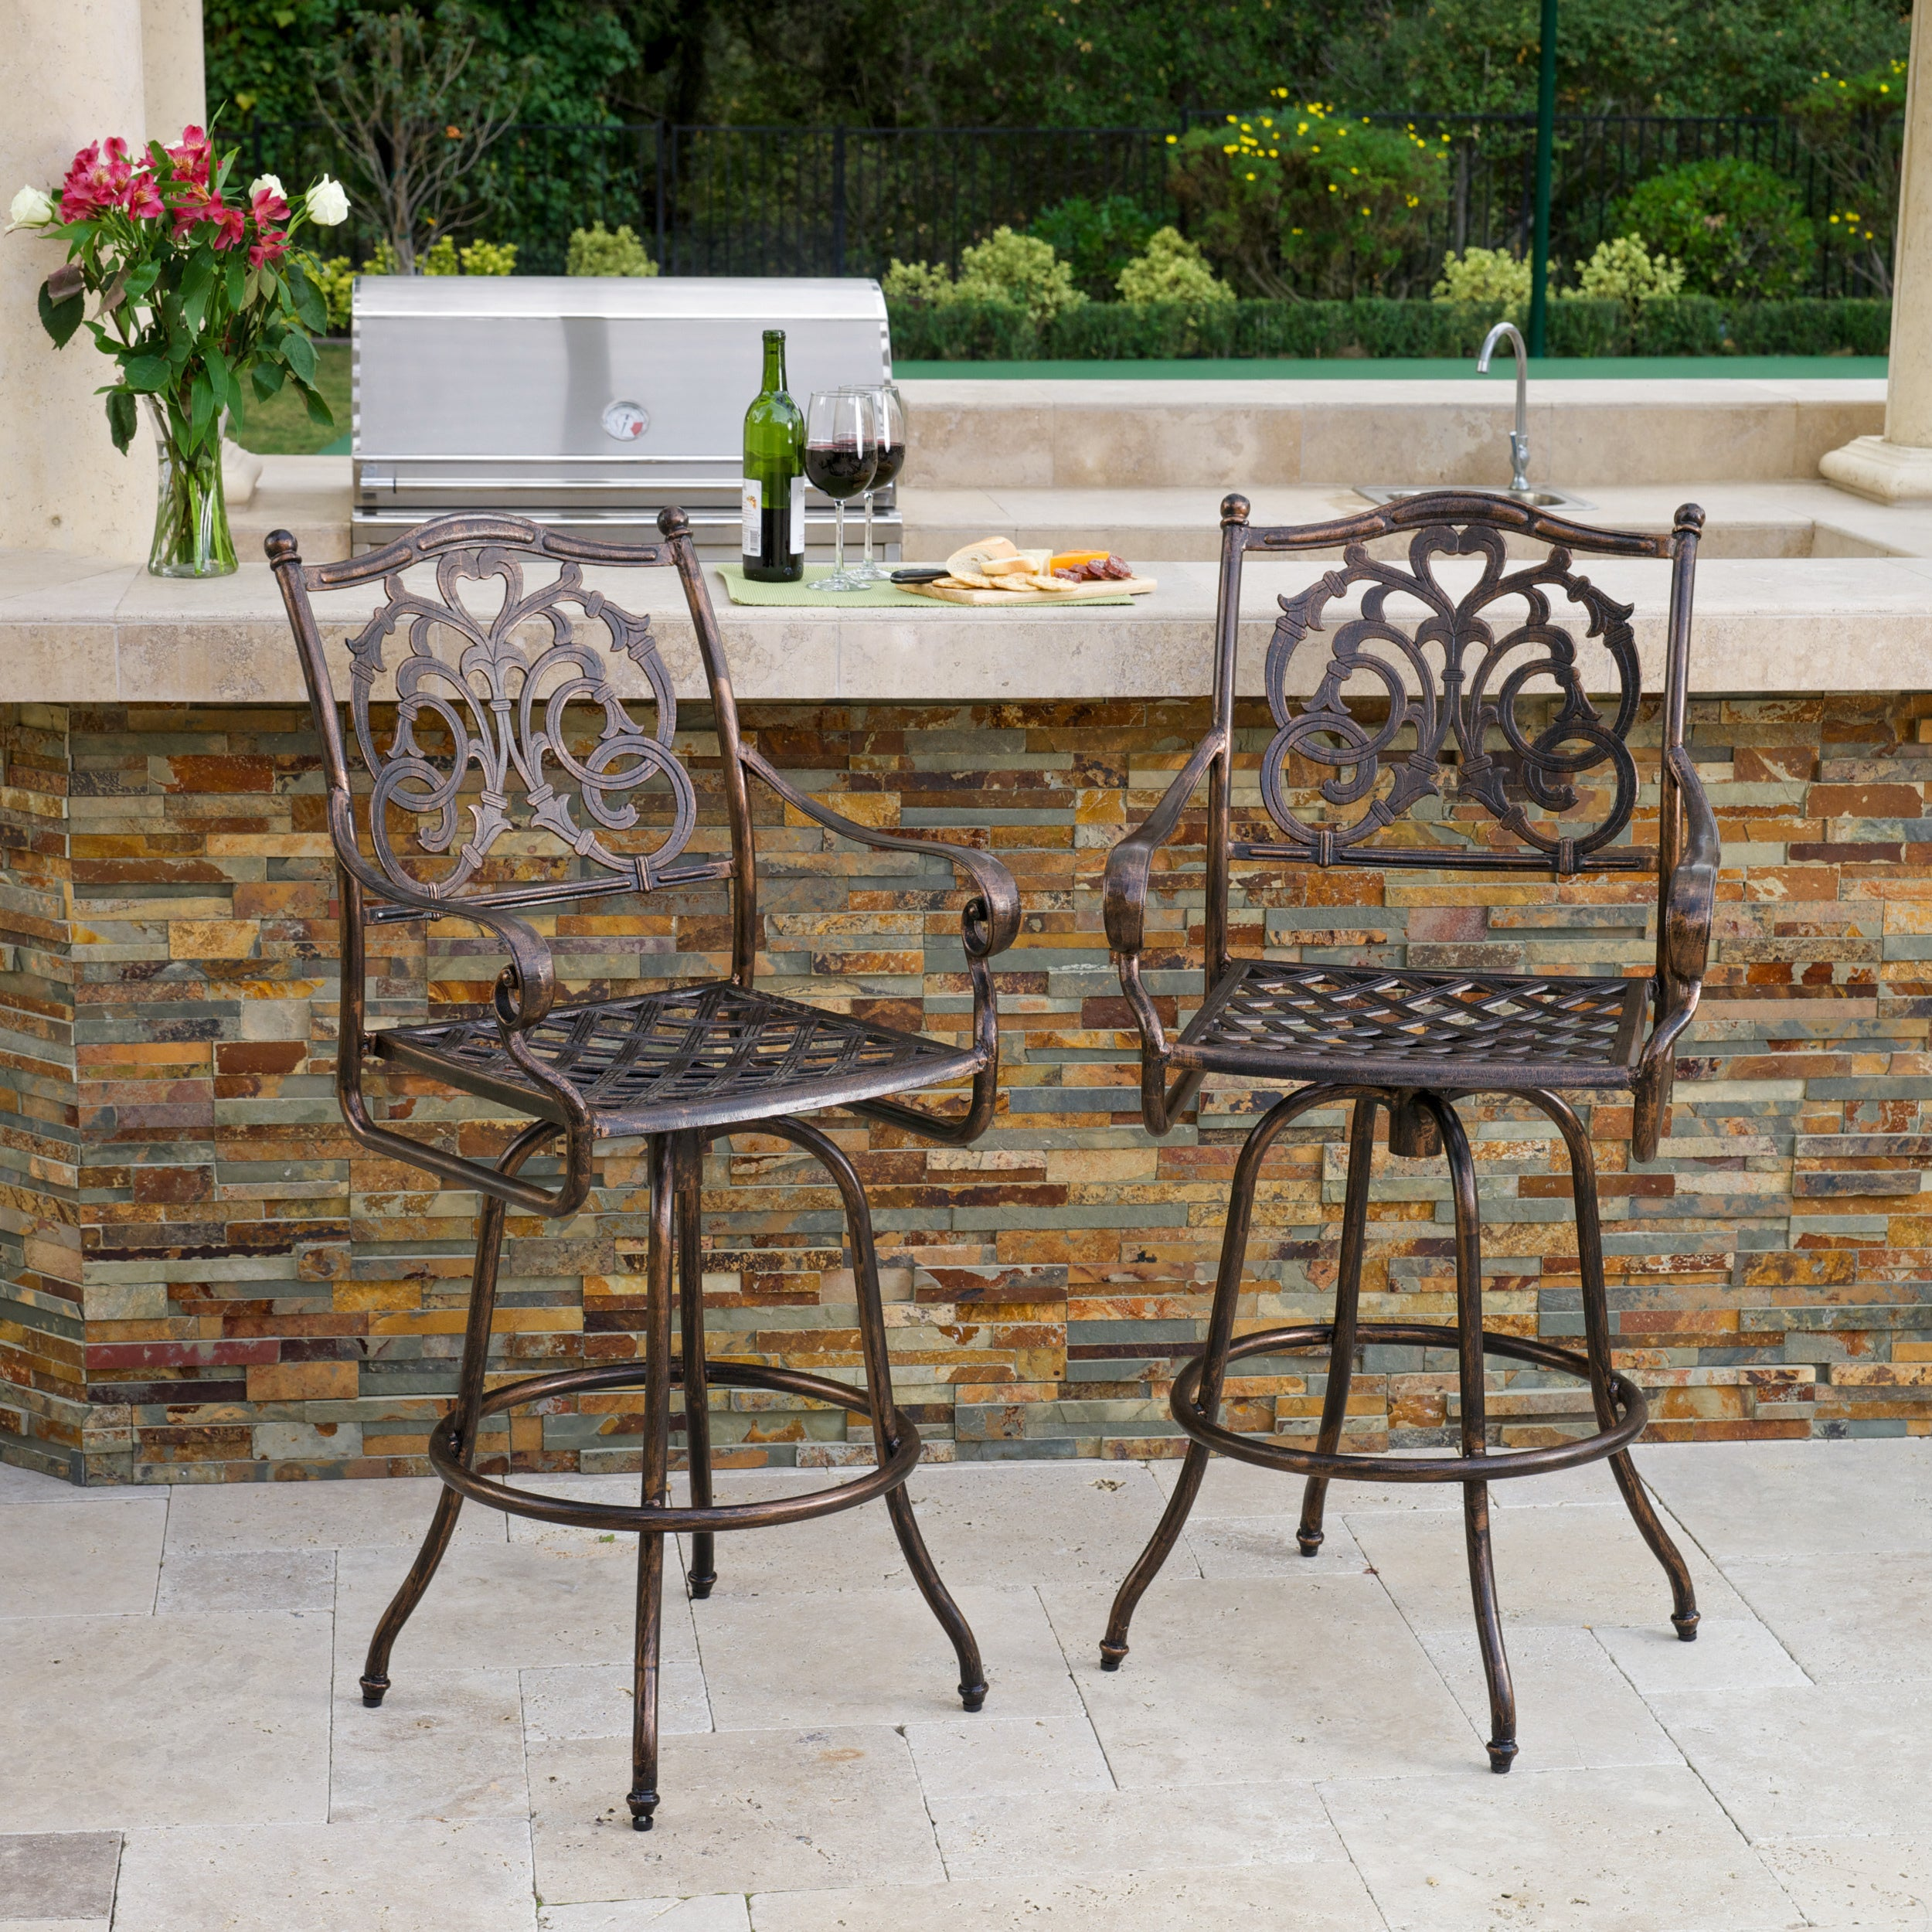 Superb Casselberry Cast Aluminum Outdoor Bar Stool Set Of 2 By Christopher Knight Home Squirreltailoven Fun Painted Chair Ideas Images Squirreltailovenorg